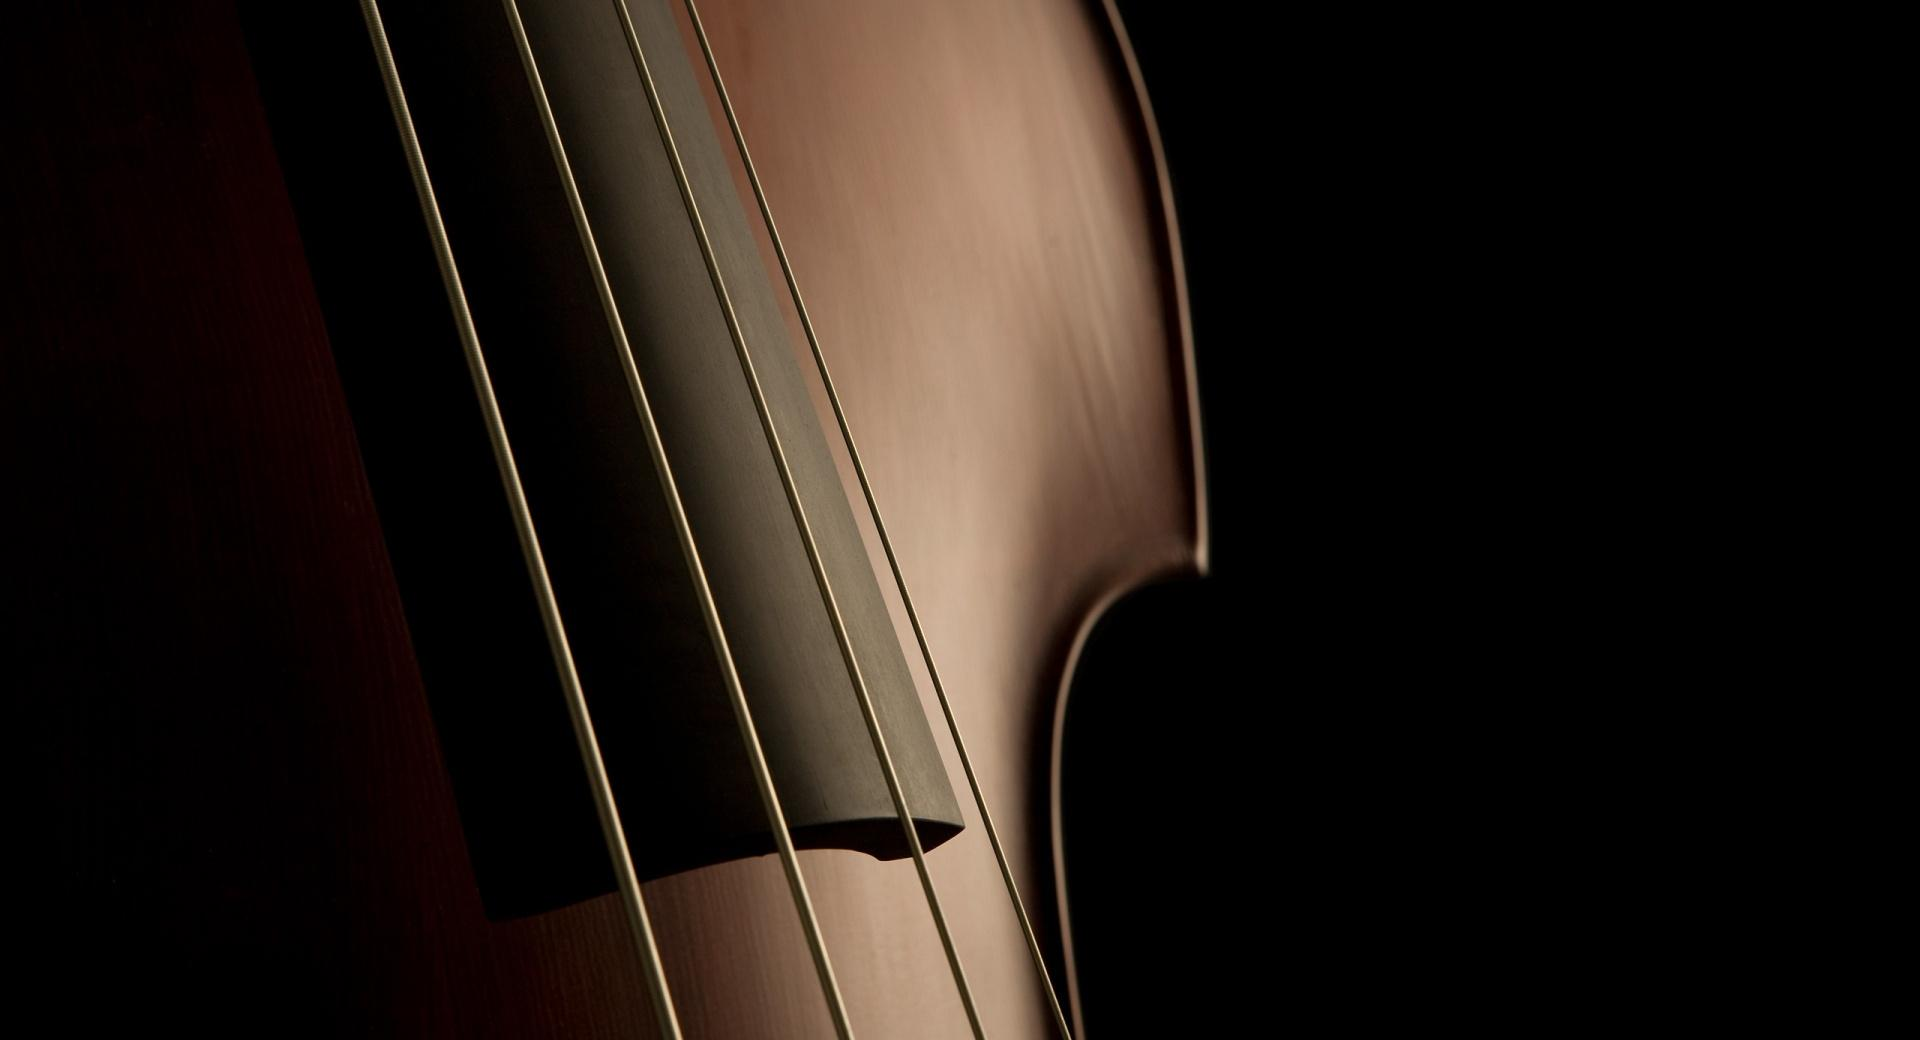 Double Bass Strings wallpapers HD quality